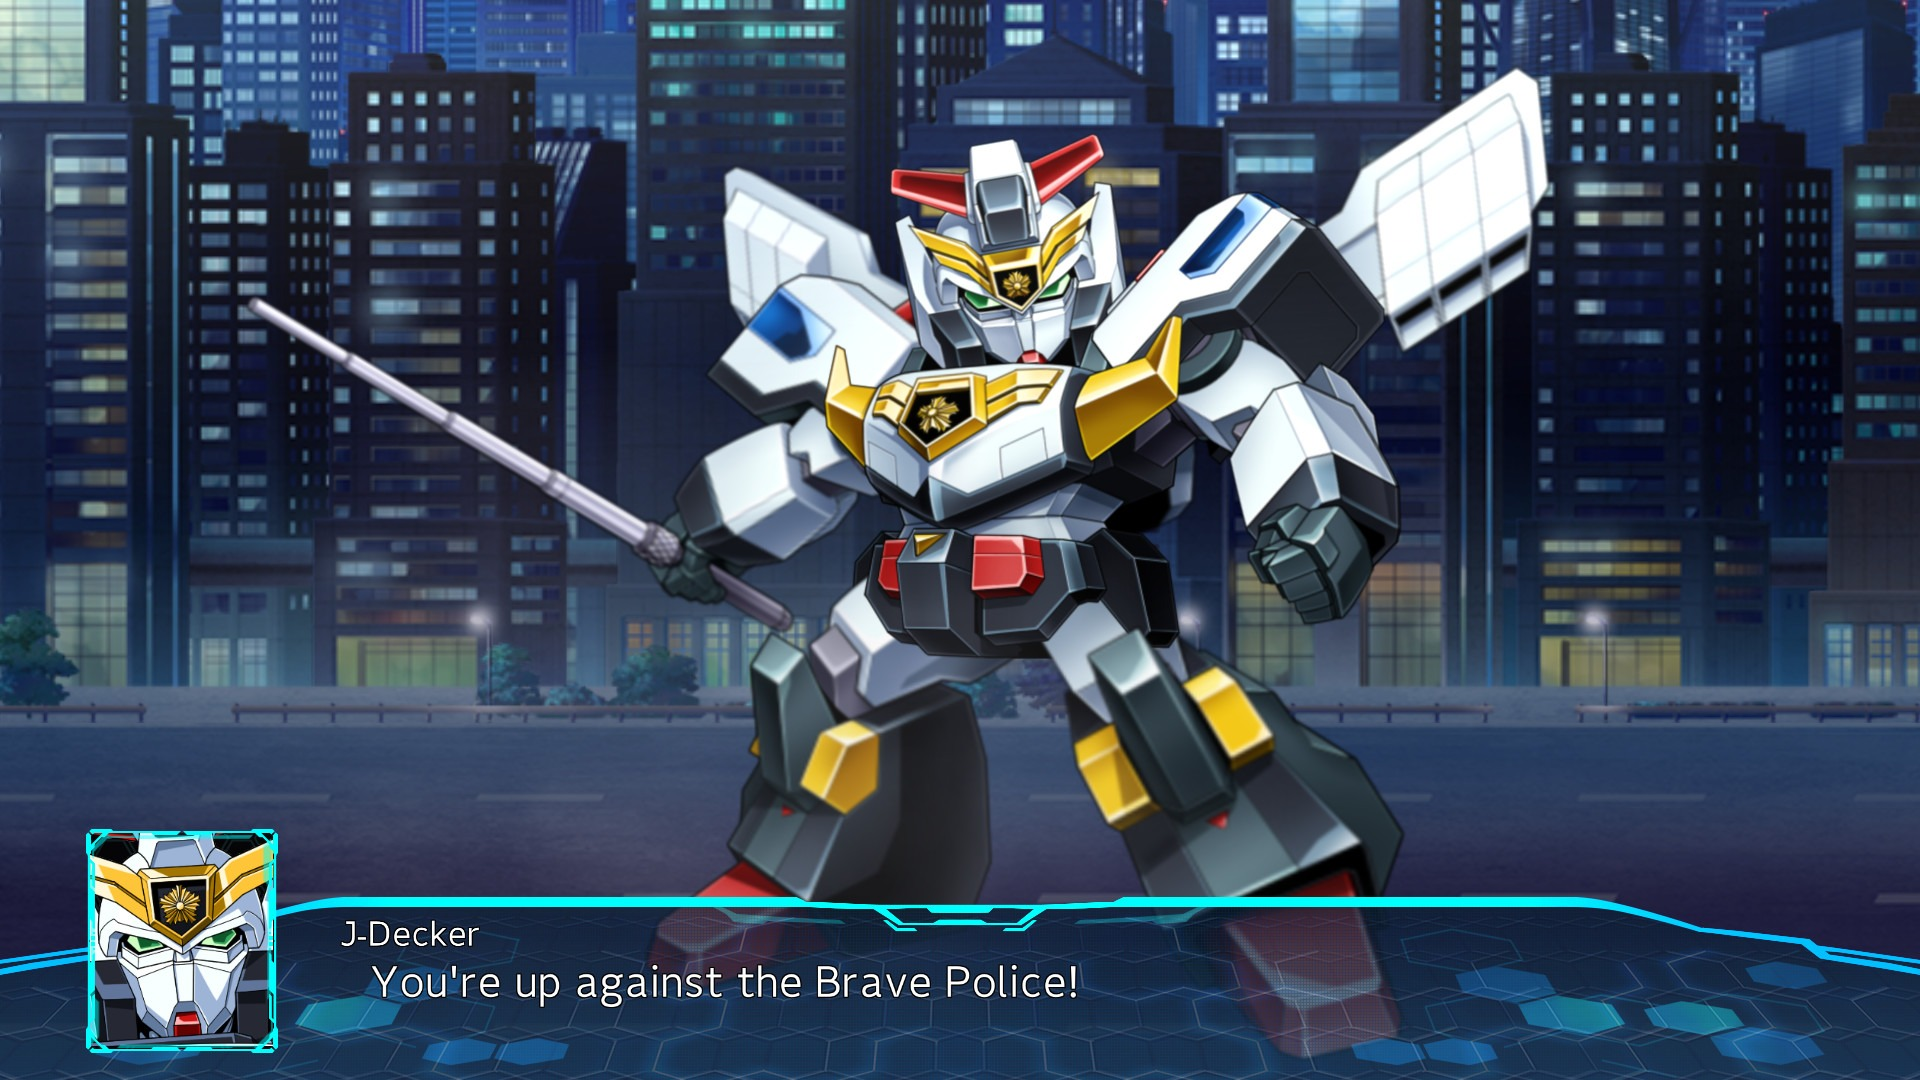 Super Robot Wars is a great place to learn about new (and classic) mecha anime